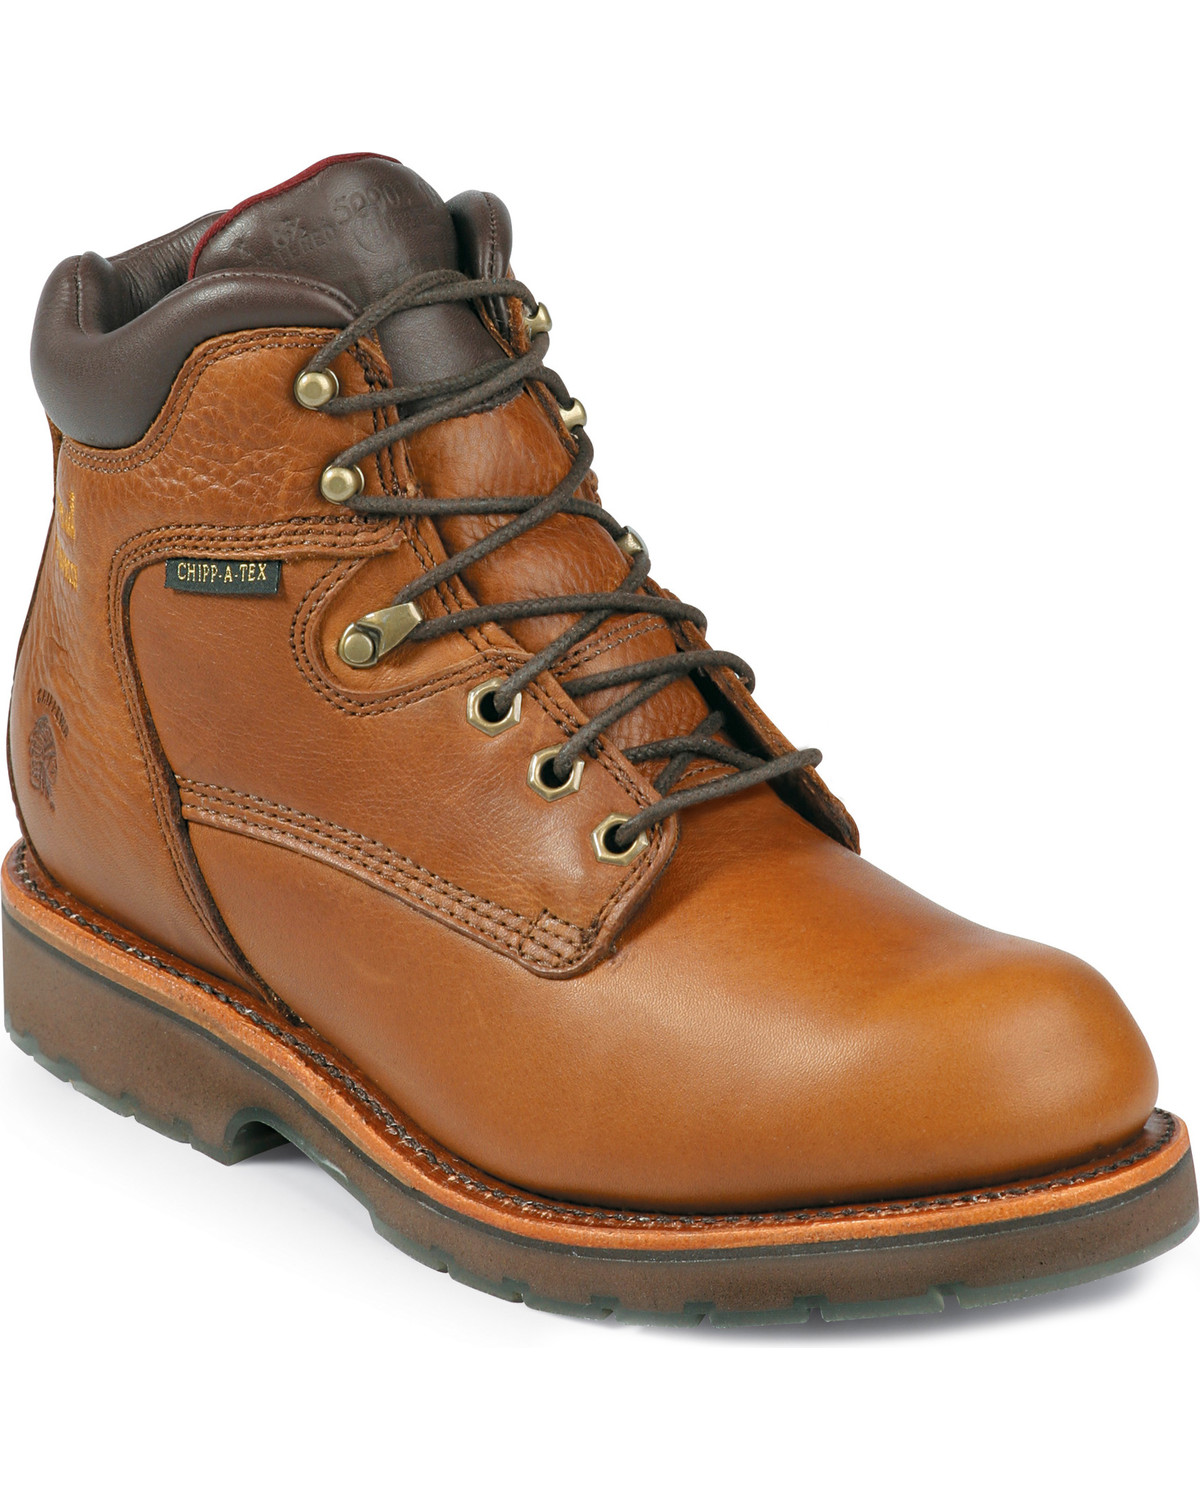 Chippewa Men S Steel Toe Lace Up Work Boots Boot Barn